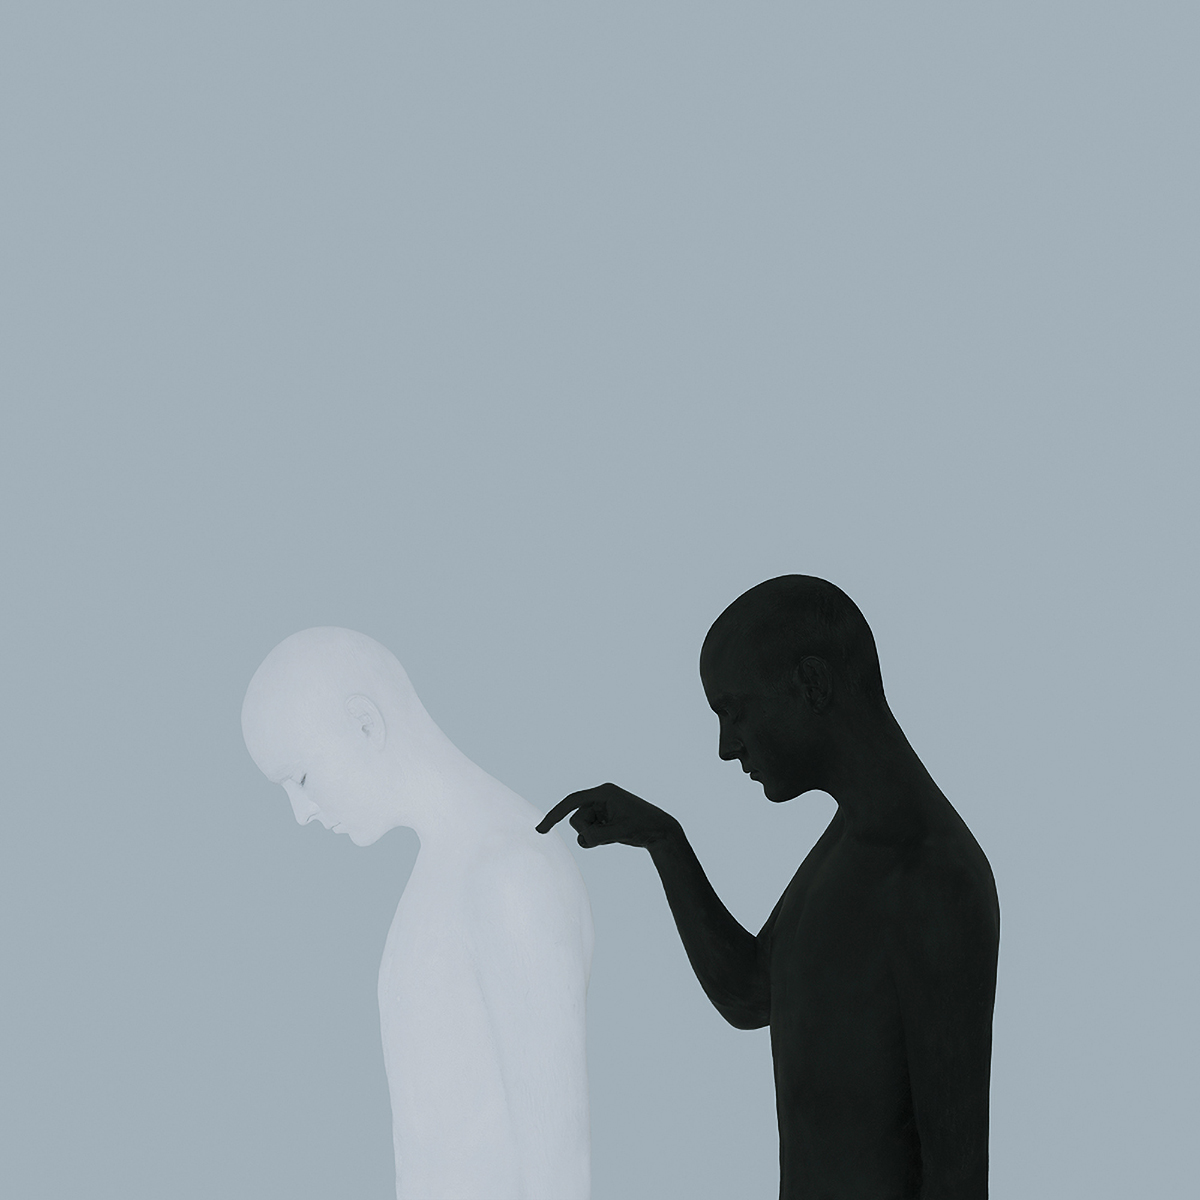 The Shadow and the Self